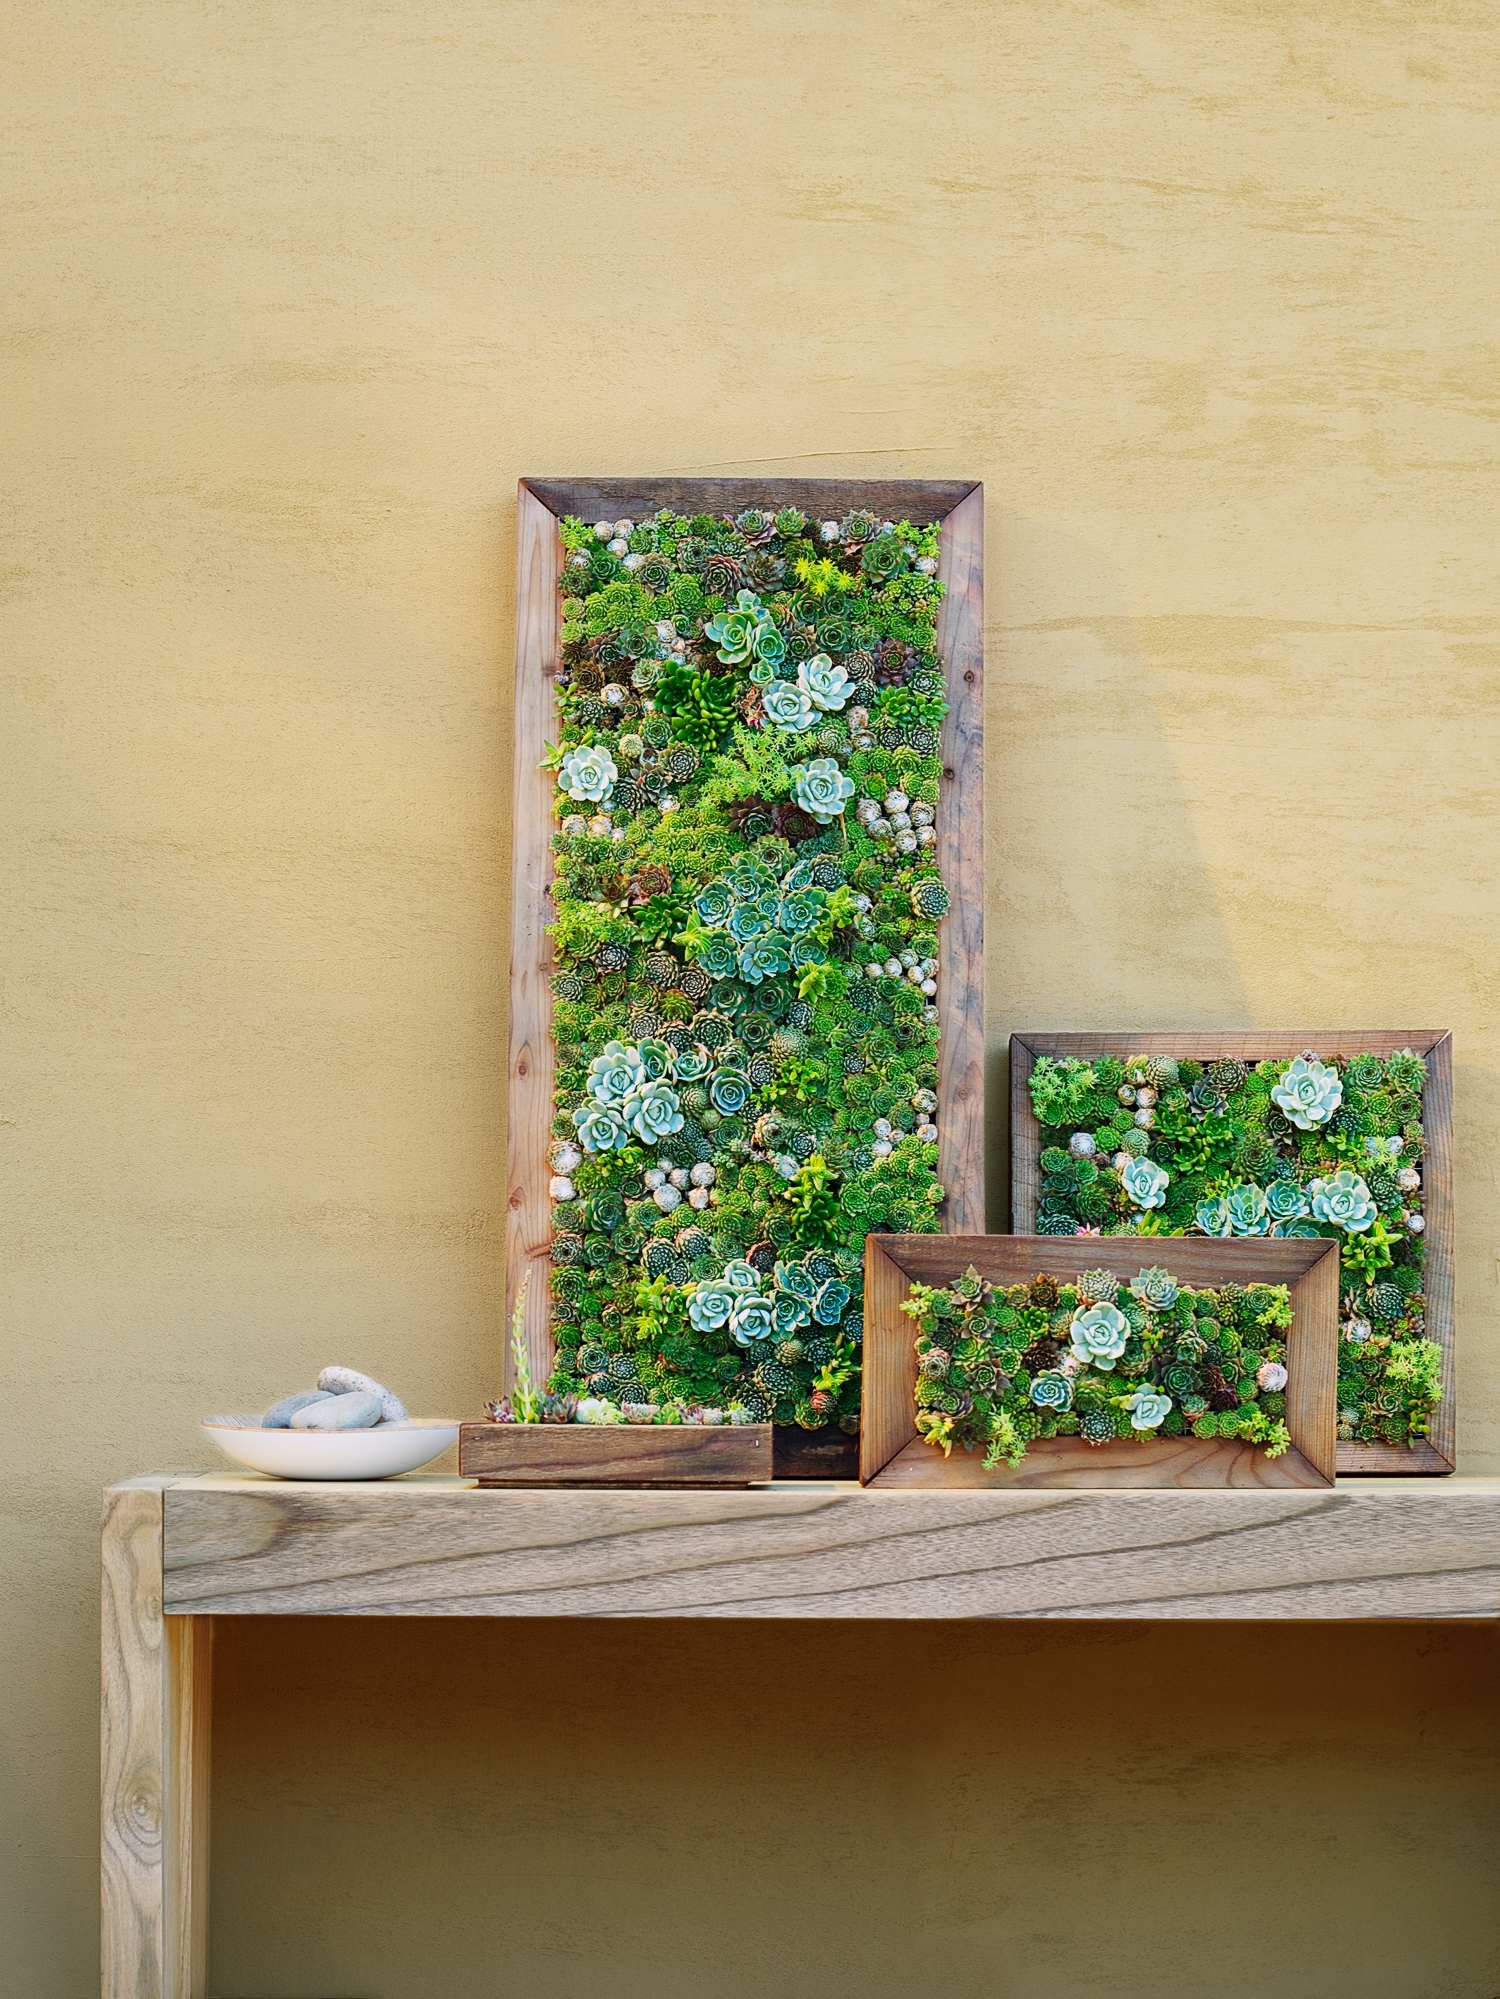 How To Make Vertical Succulent Gardens – Sunset Magazine For Succulent Wall Art (View 7 of 20)